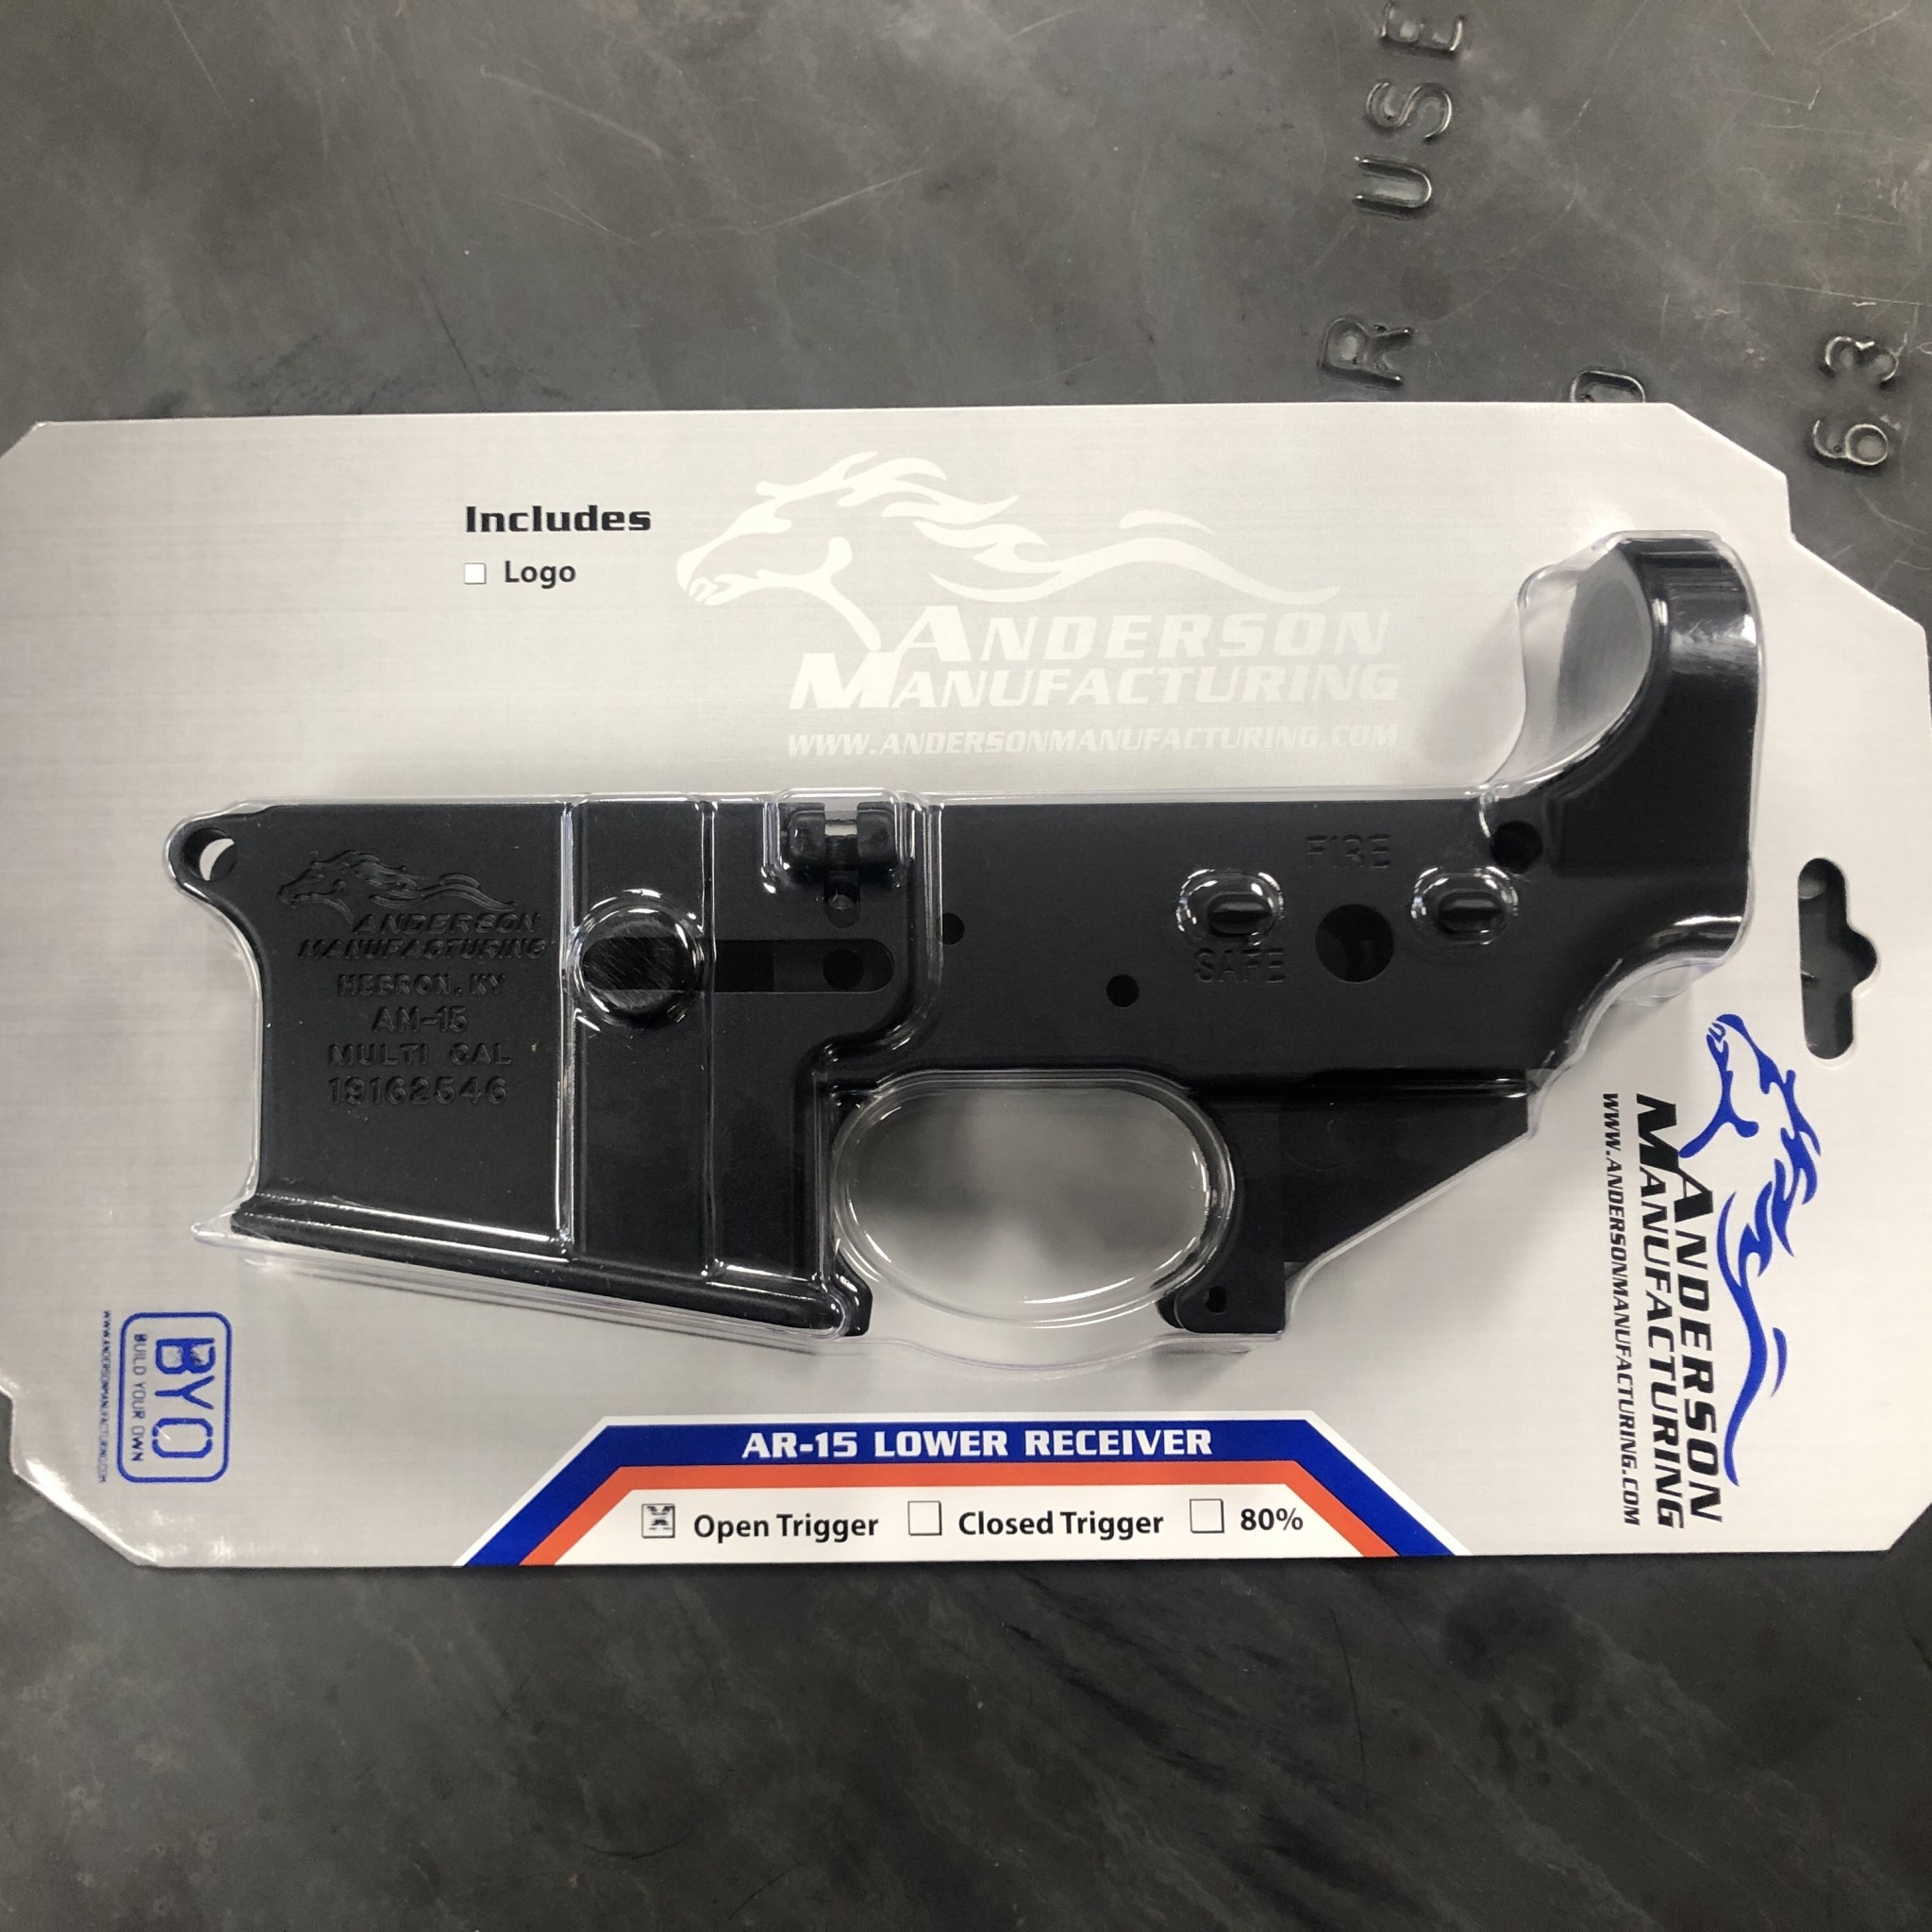 AM-15 Open Trigger Receiver MULTI